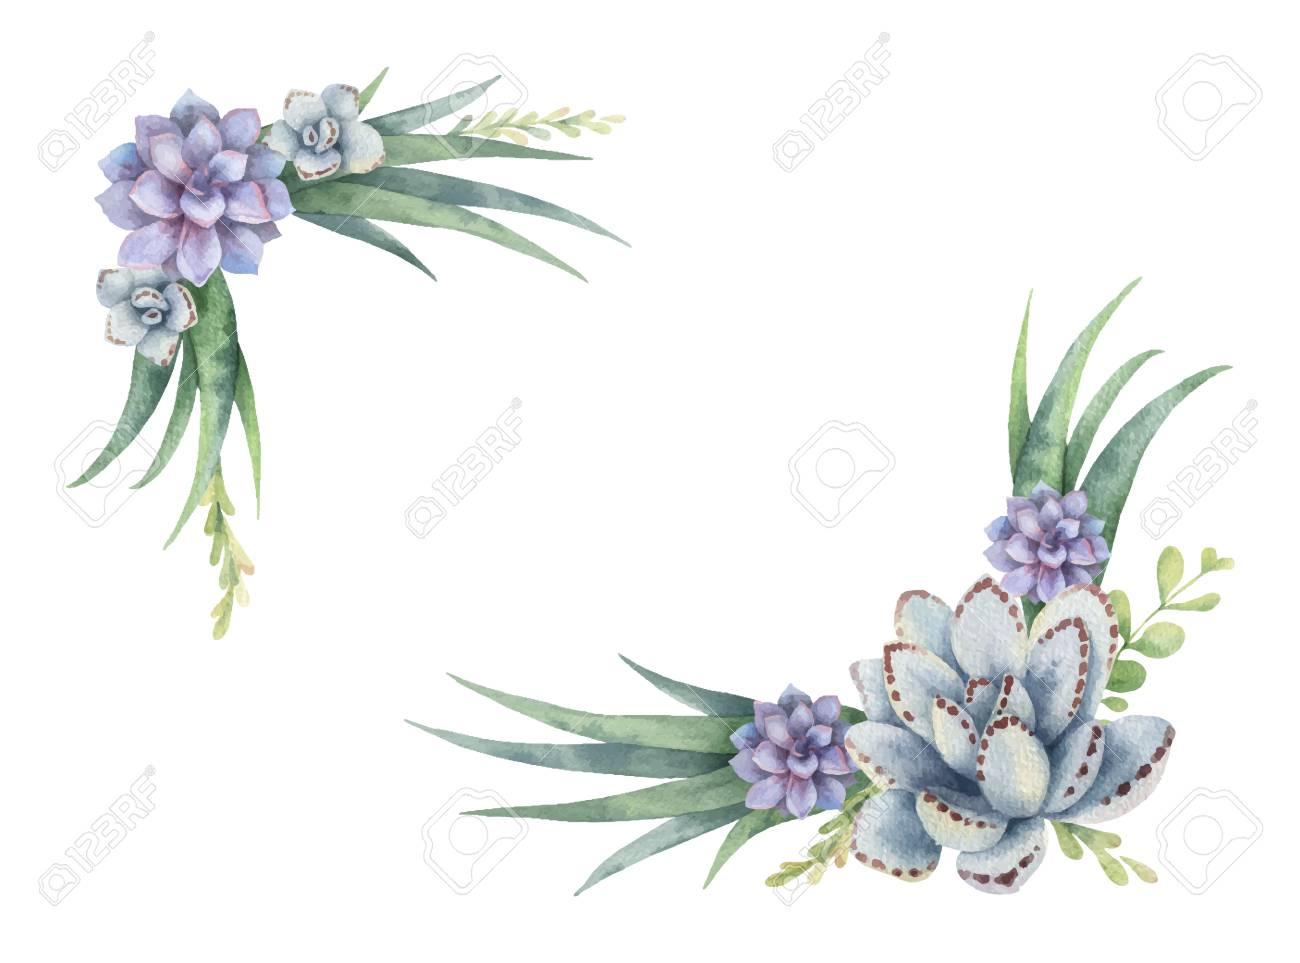 Watercolor Vector Wreath Of Cacti And Succulent Plants Isolated Royalty Free Cliparts Vectors And Stock Illustration Image 96317891